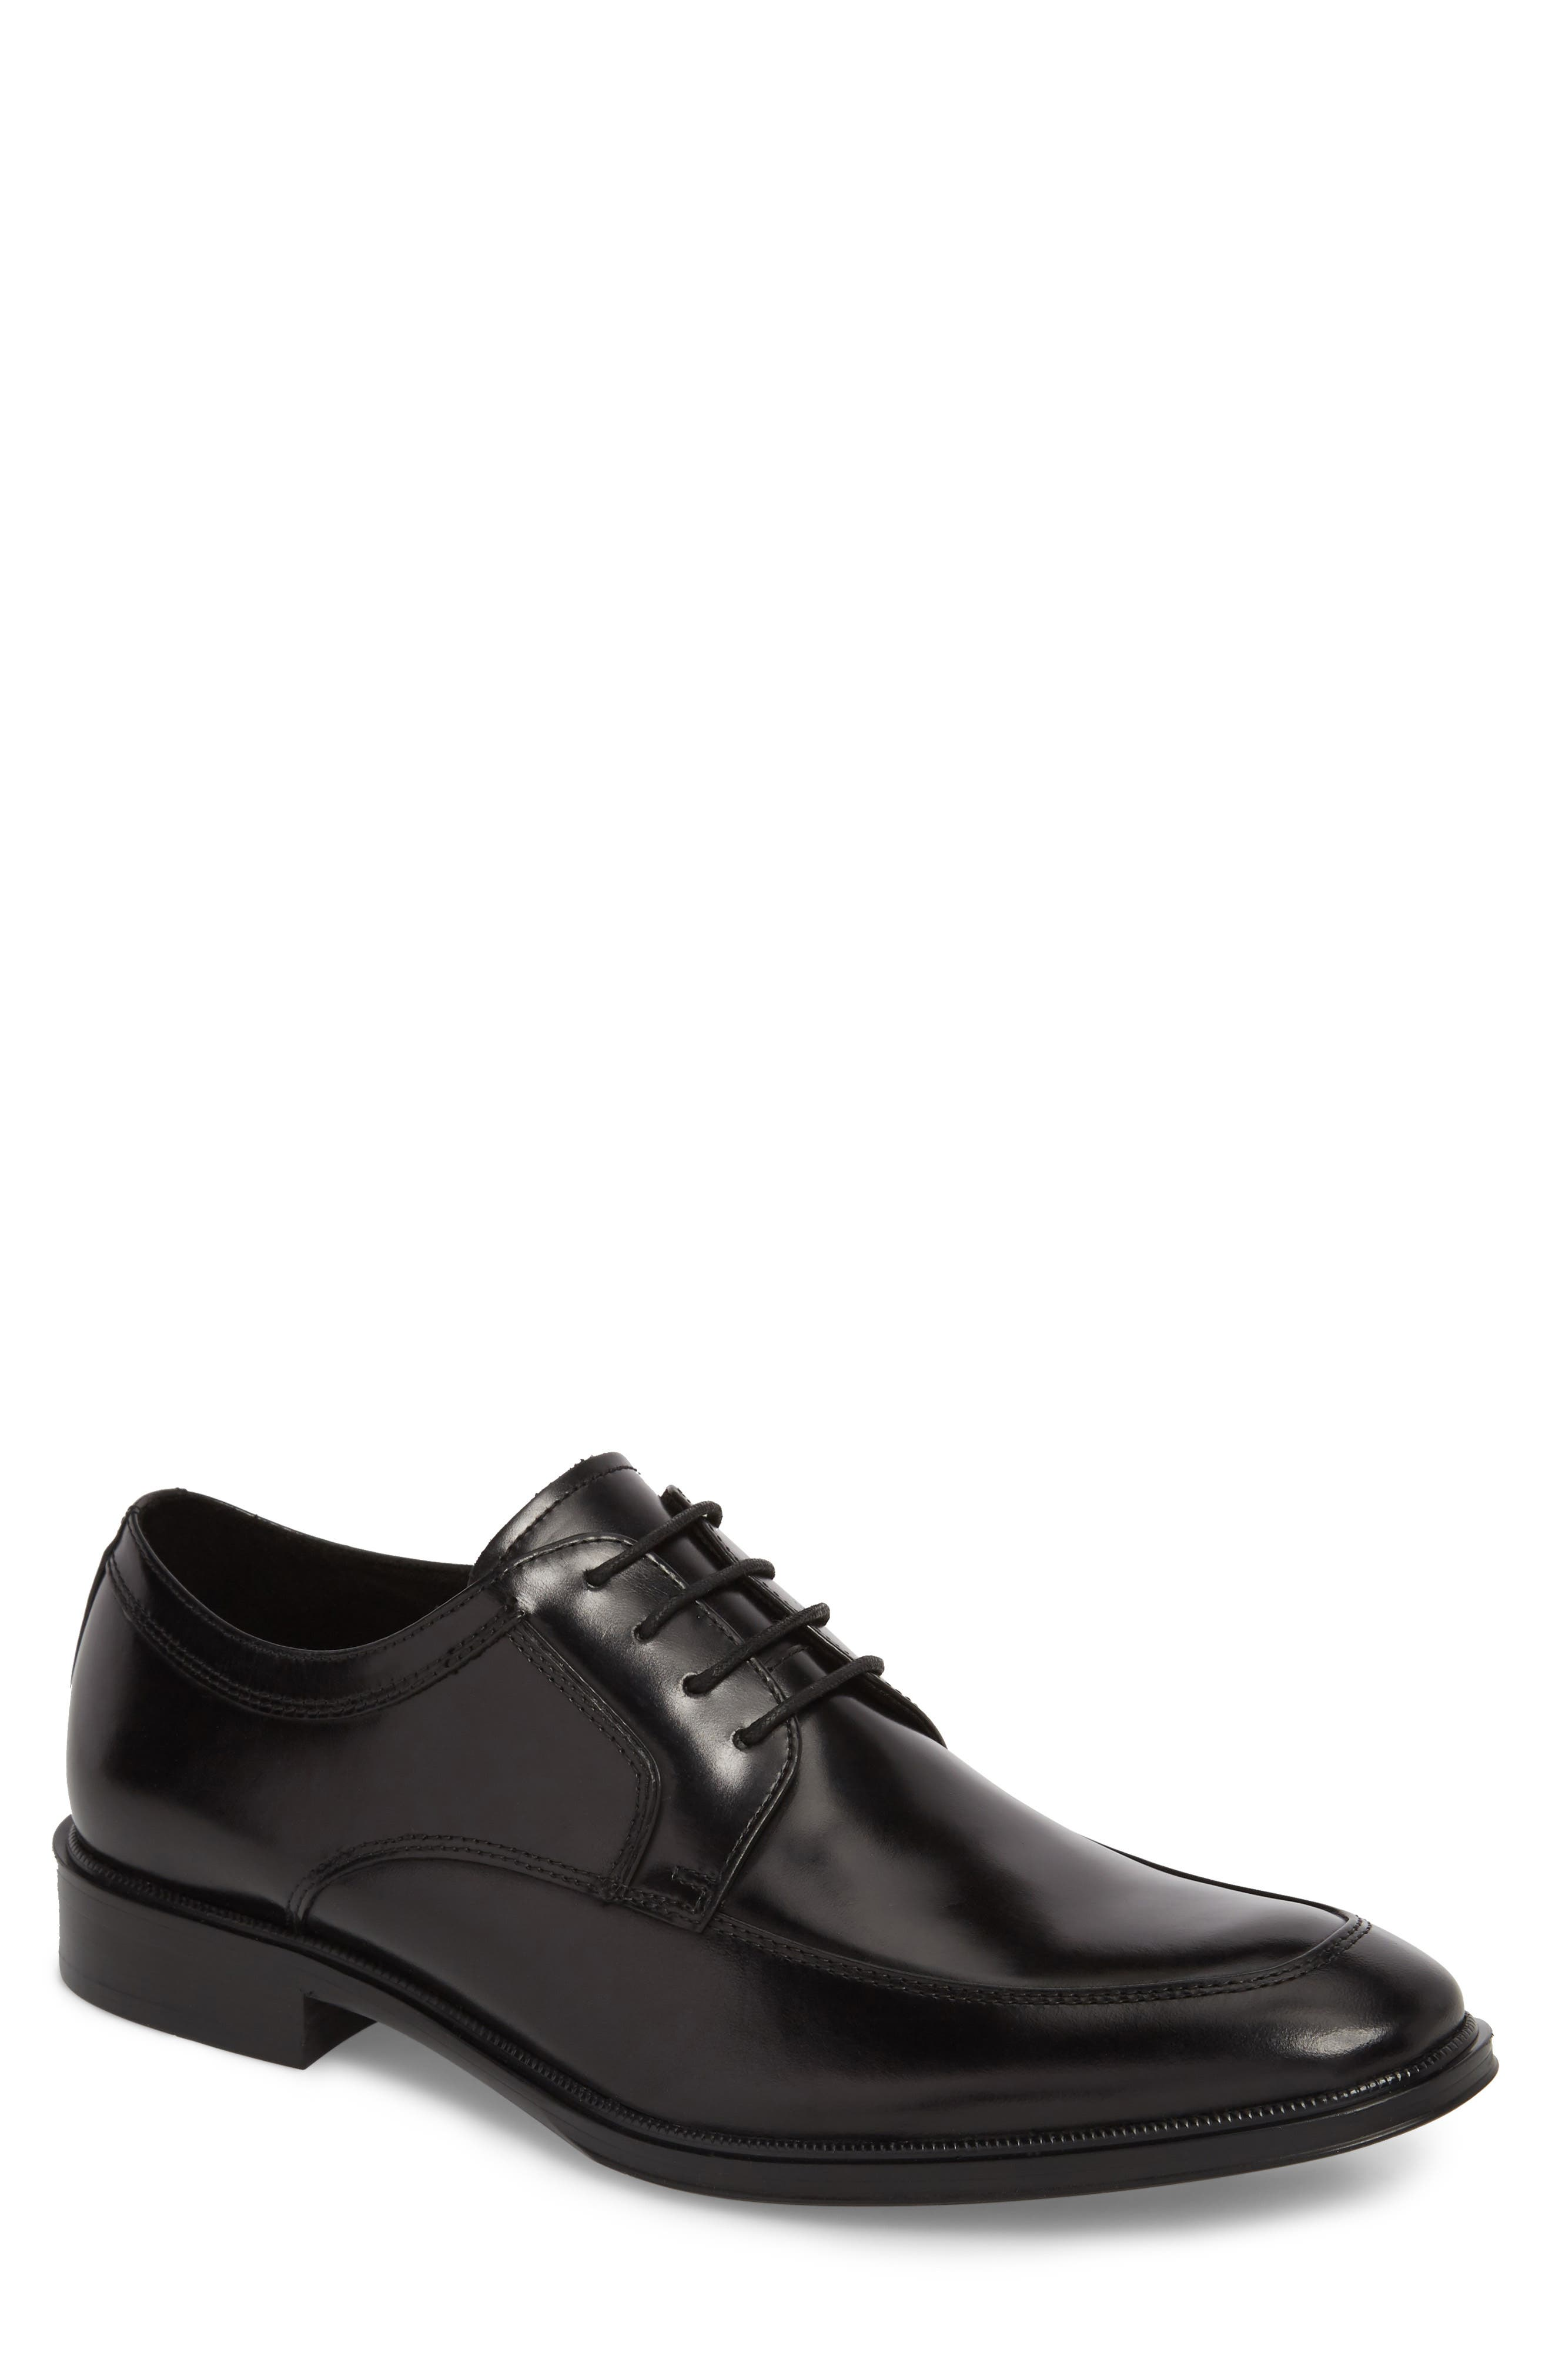 Tully Apron Toe Derby,                             Main thumbnail 1, color,                             BLACK LEATHER